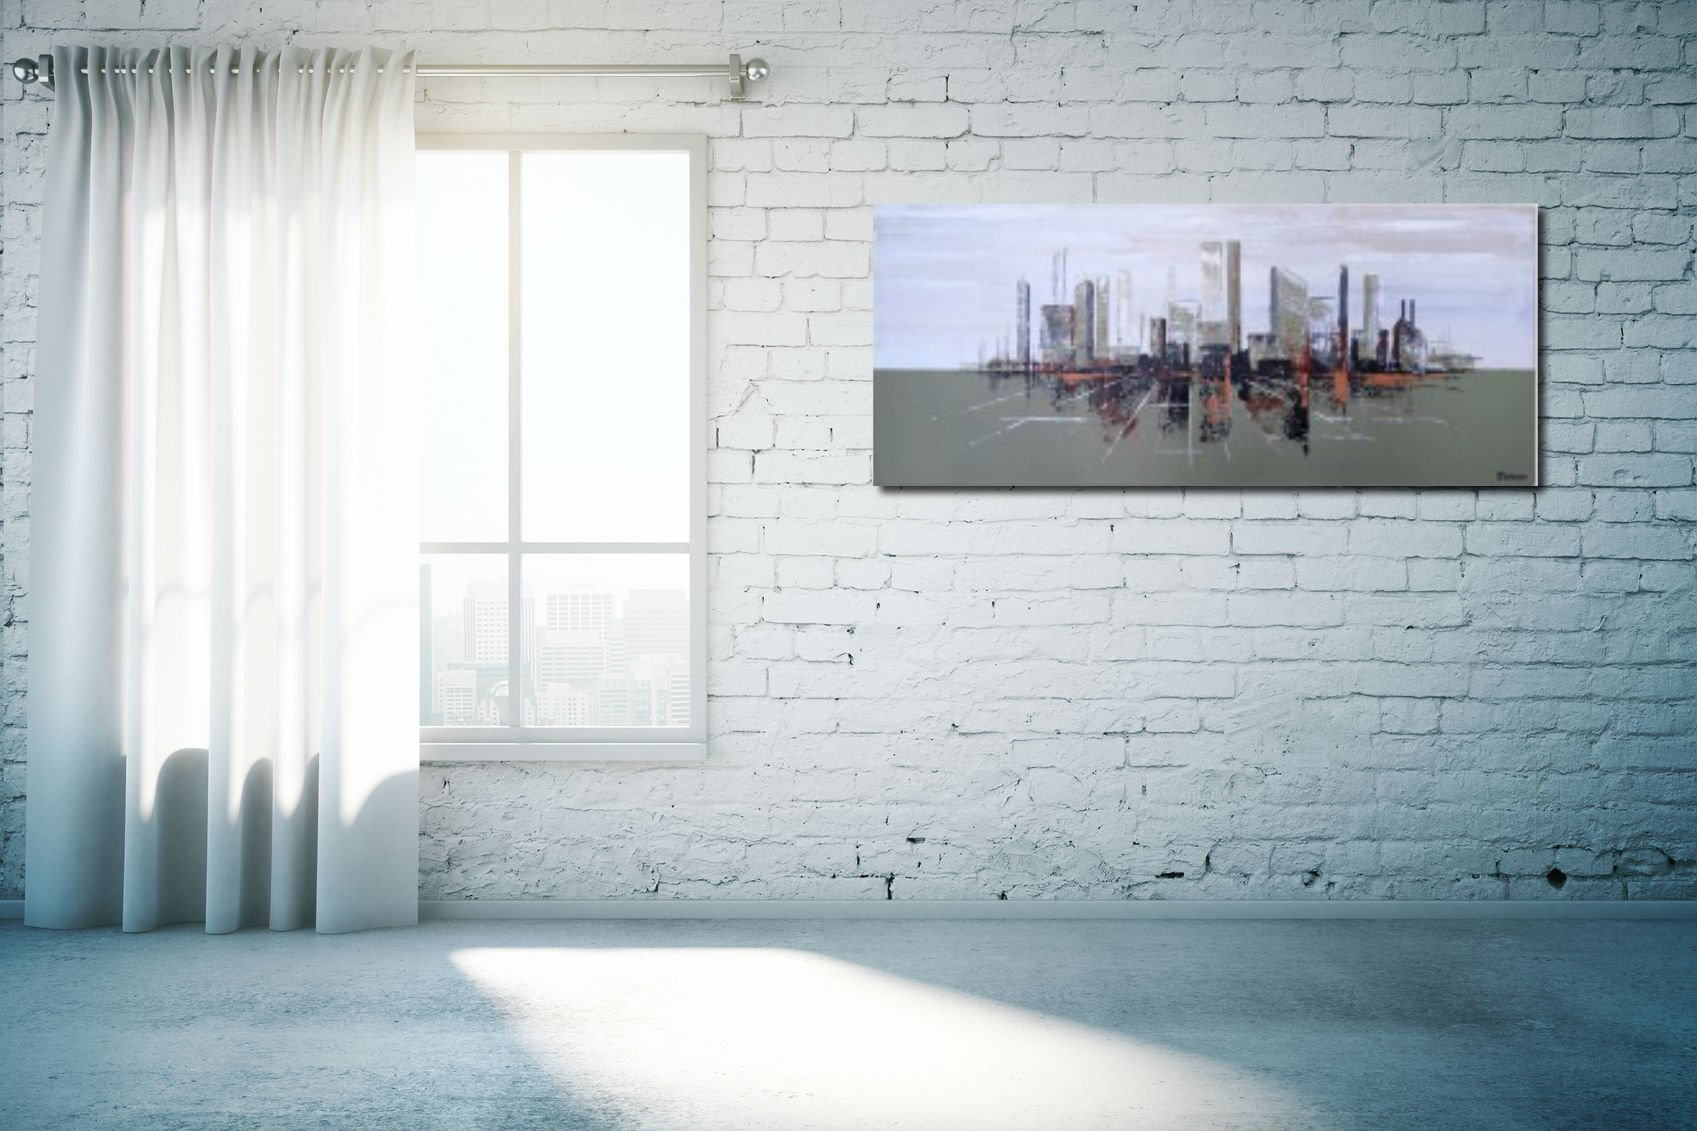 The City Calls Me Home - Buttner